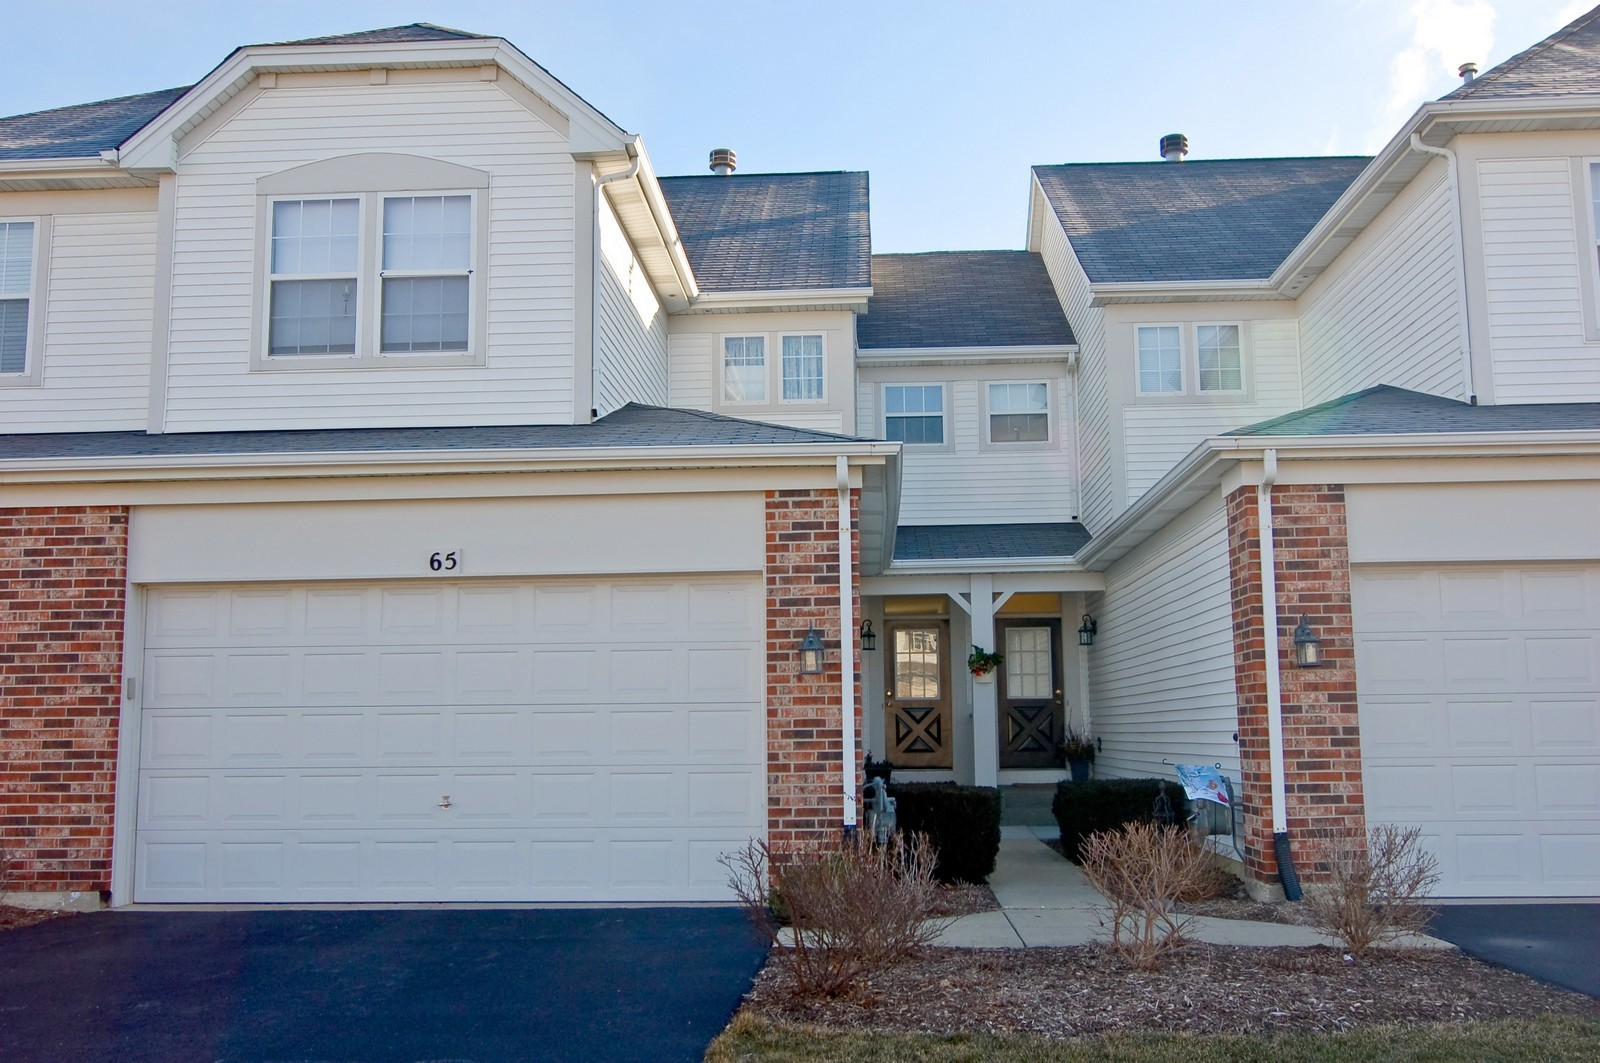 Real Estate Photography - 65 Woodview Dr, Glen Ellyn, IL, 60137 - Front View